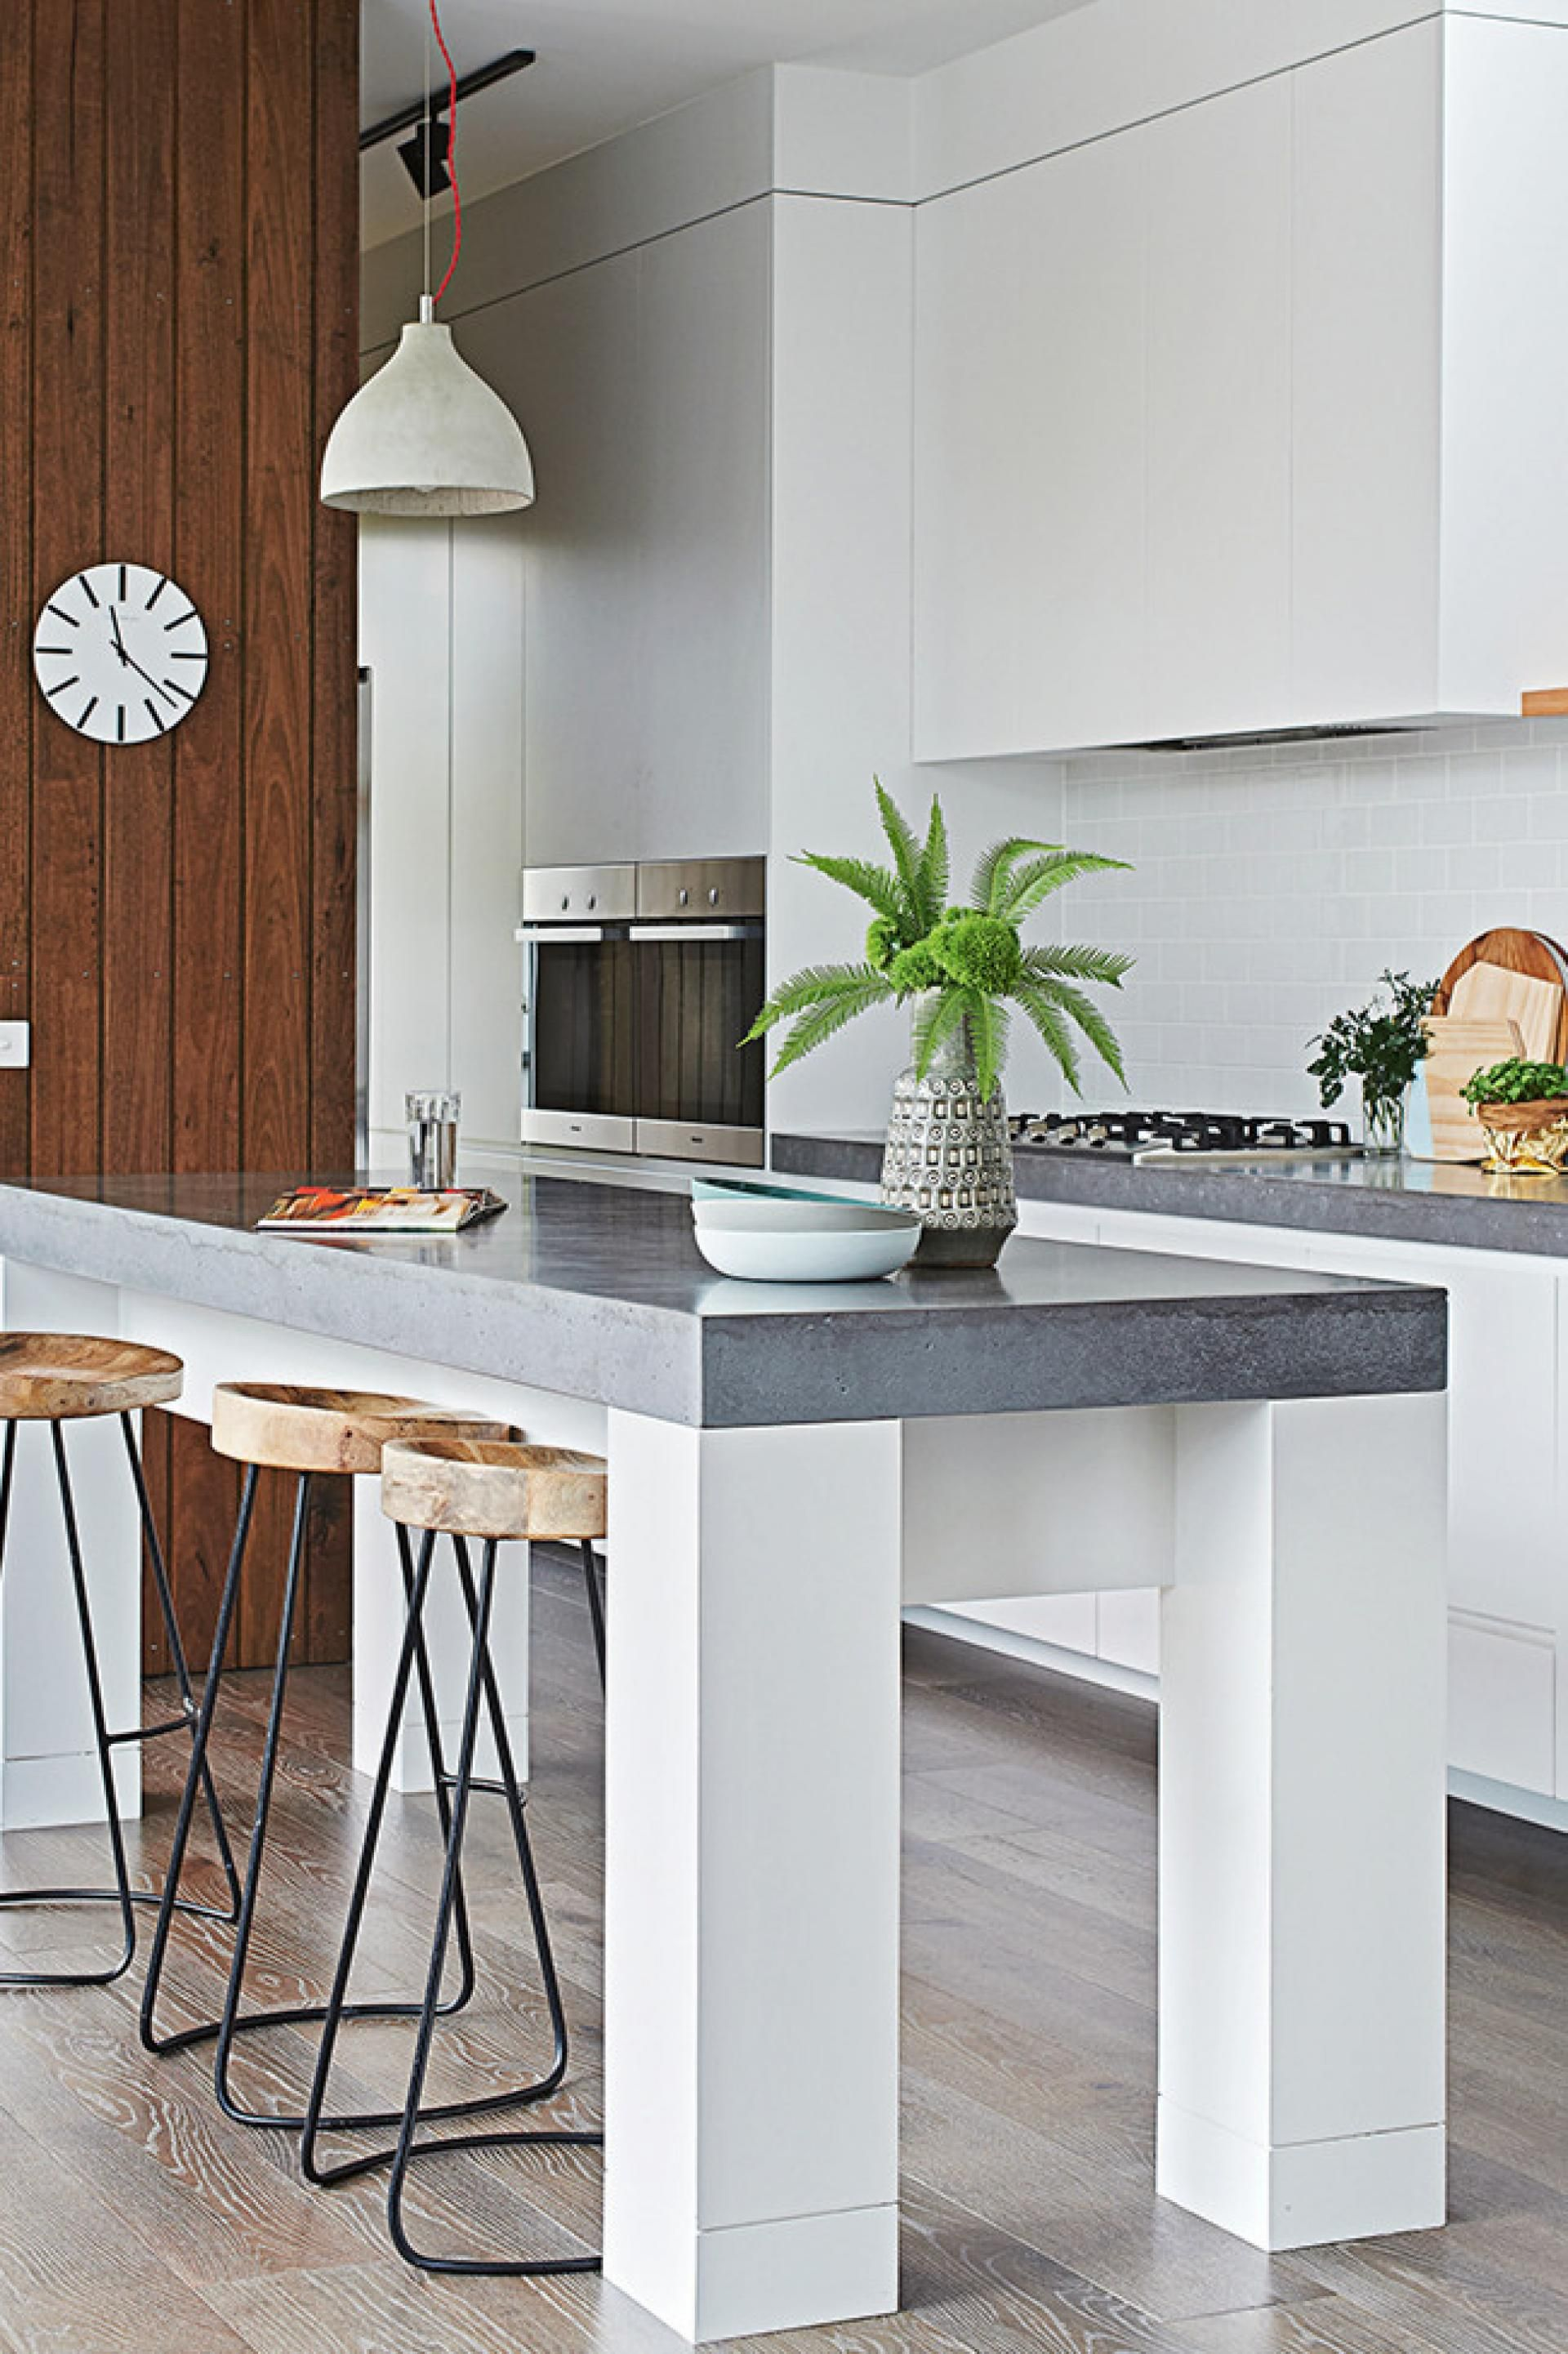 formed concrete bench top in this kitchen makes a timeless statement ...